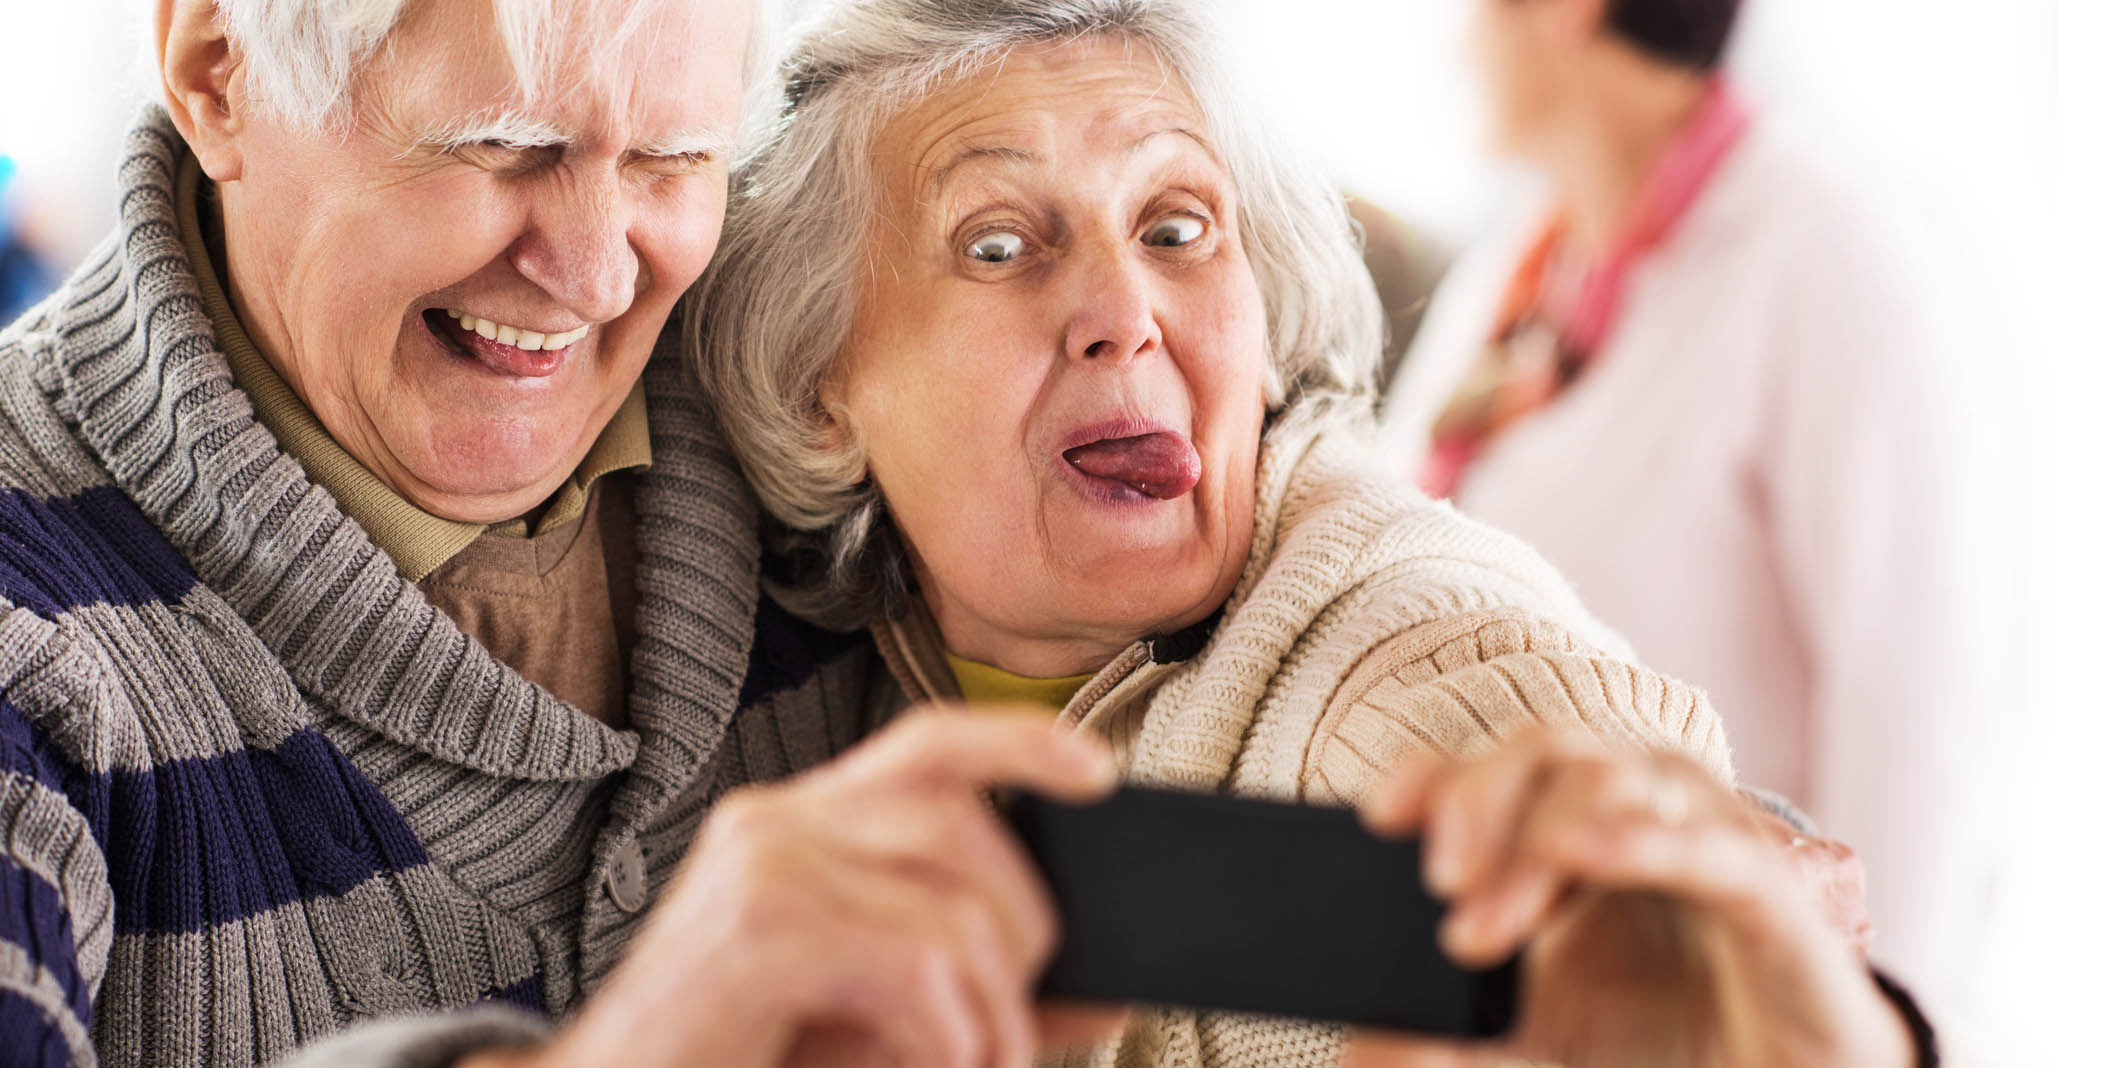 Senior Tech Pew Survey Finds That The Number Of Seniors Who Own Smartphones